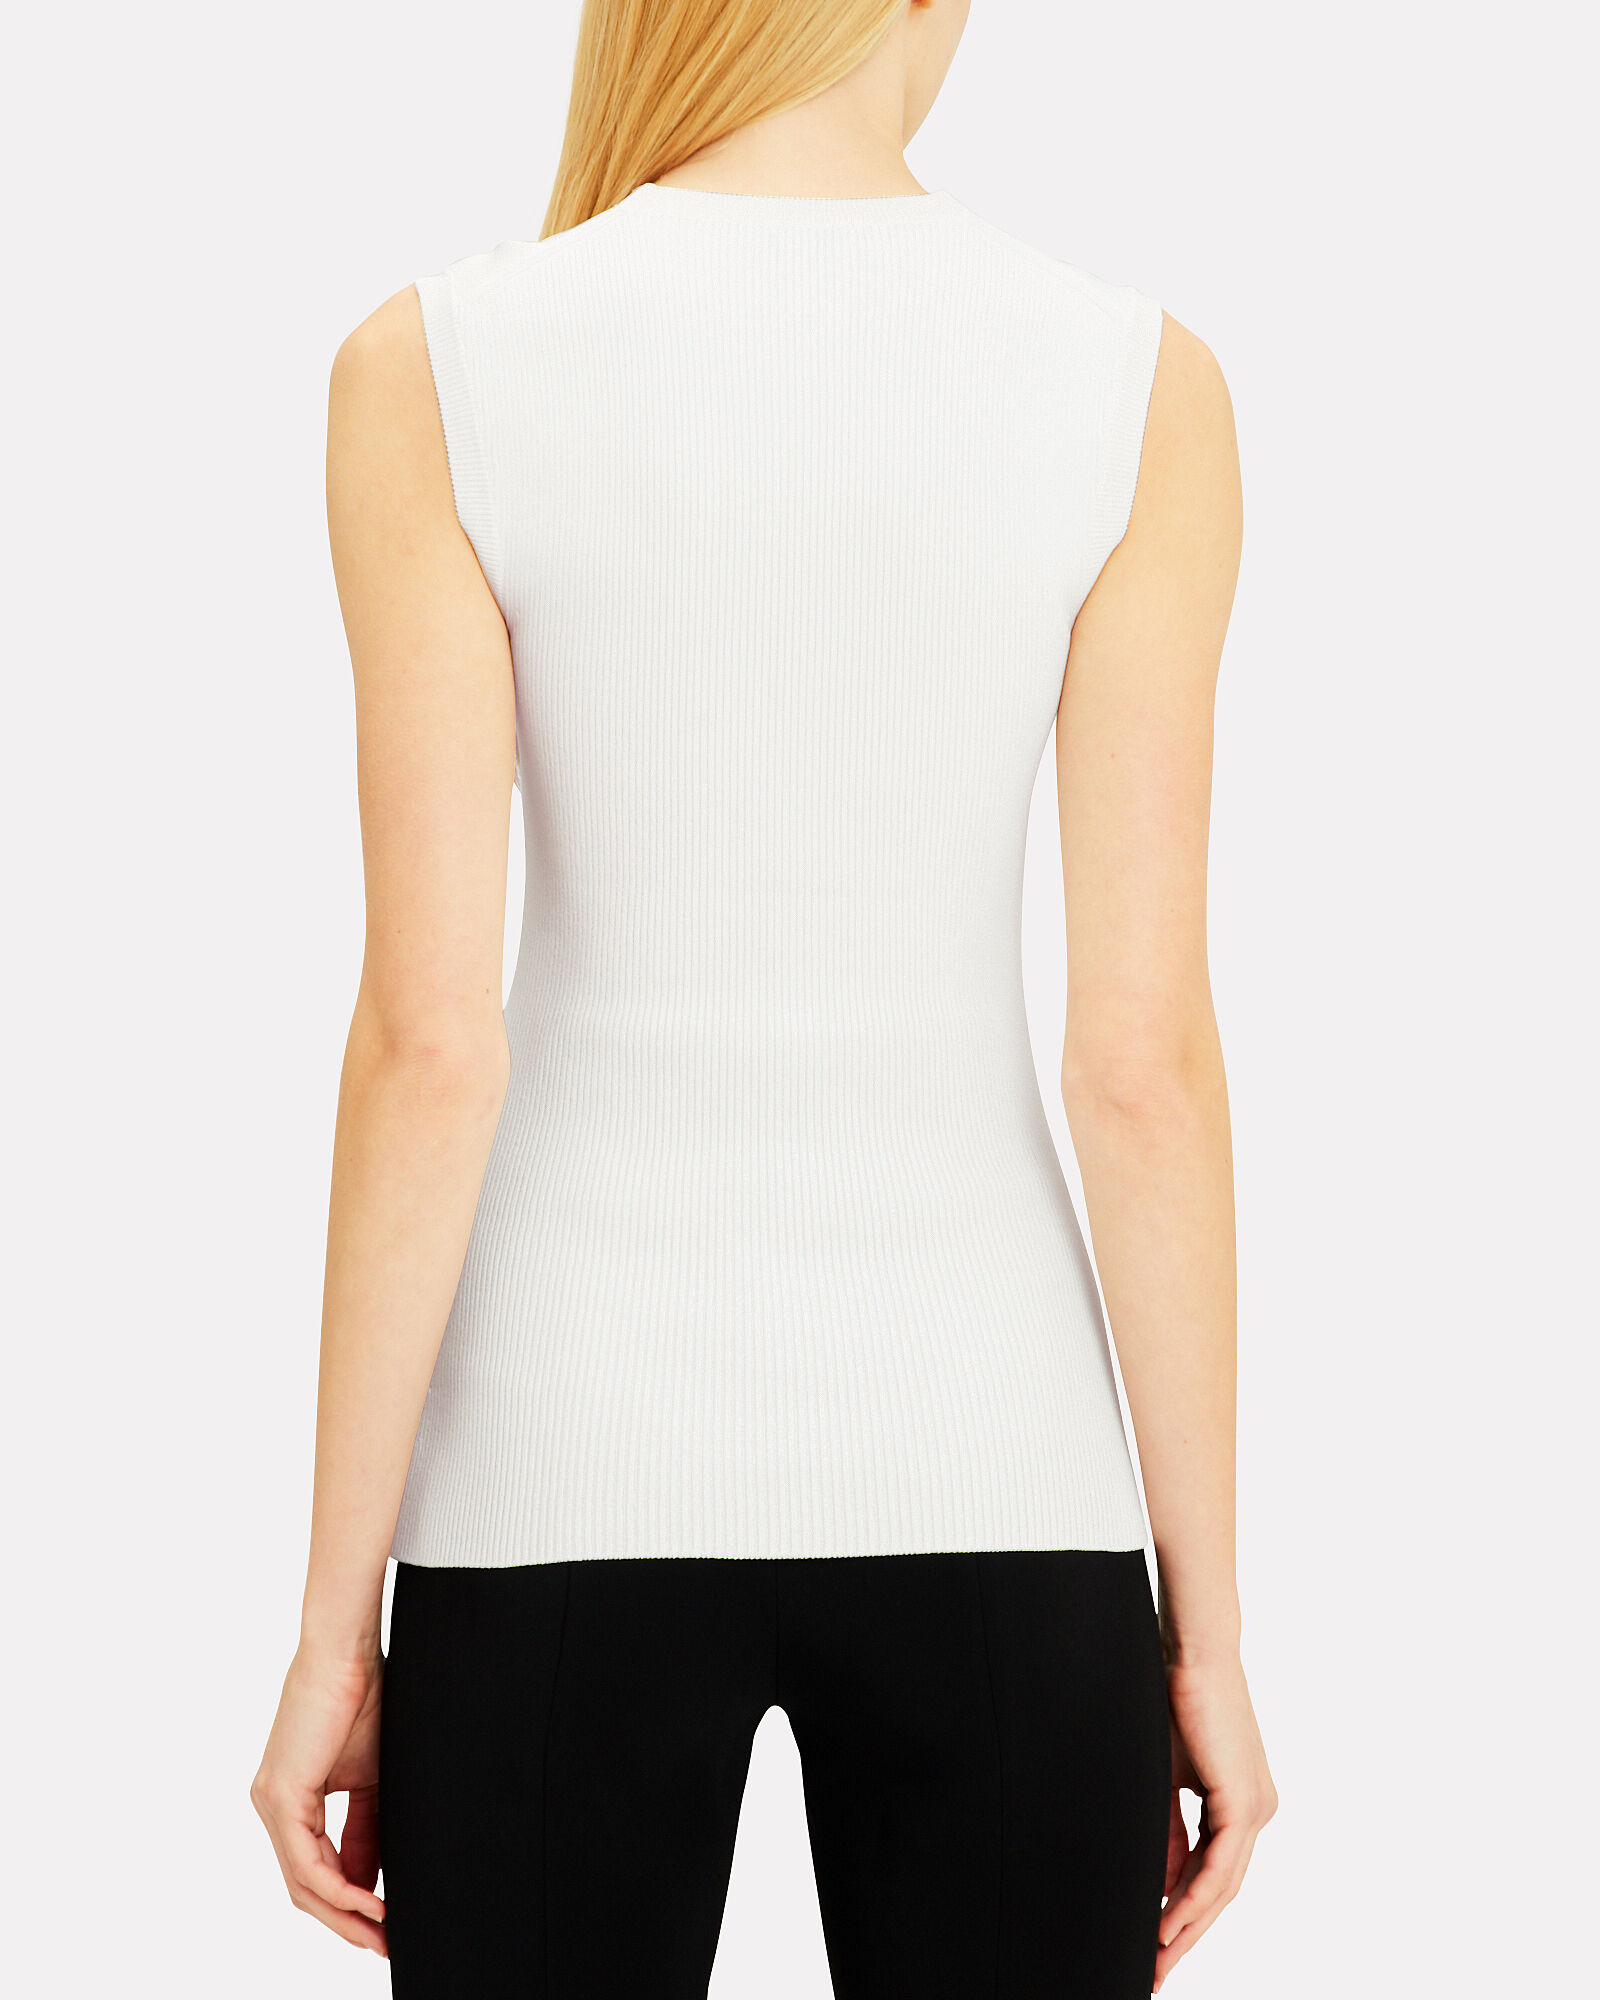 Mesh Panel Ivory Knit Top, IVORY, hi-res